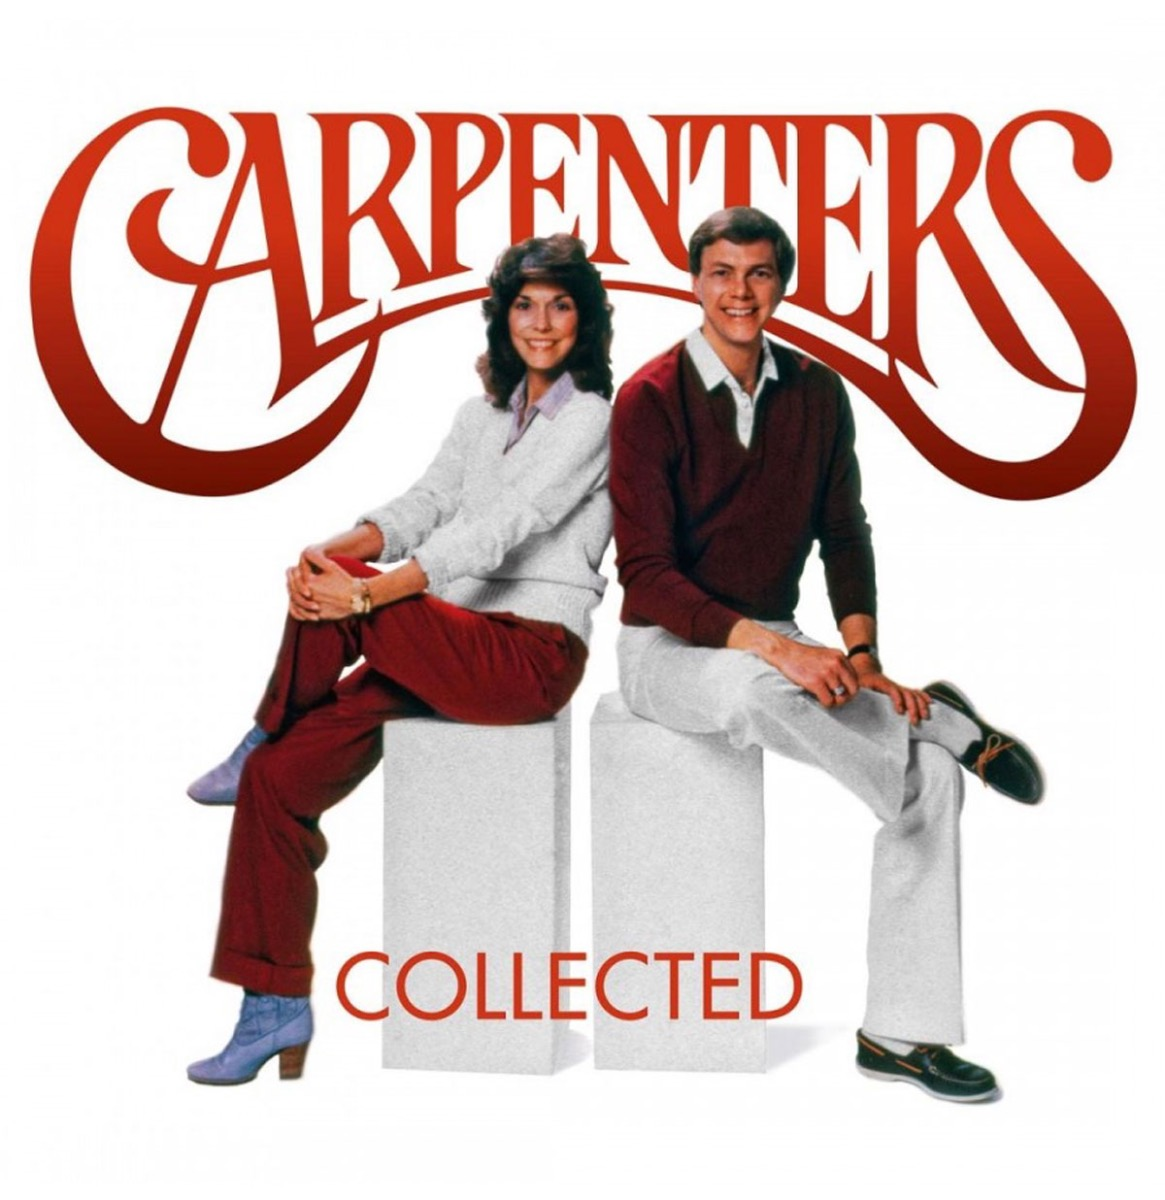 The Carpenters - Collected 2LP